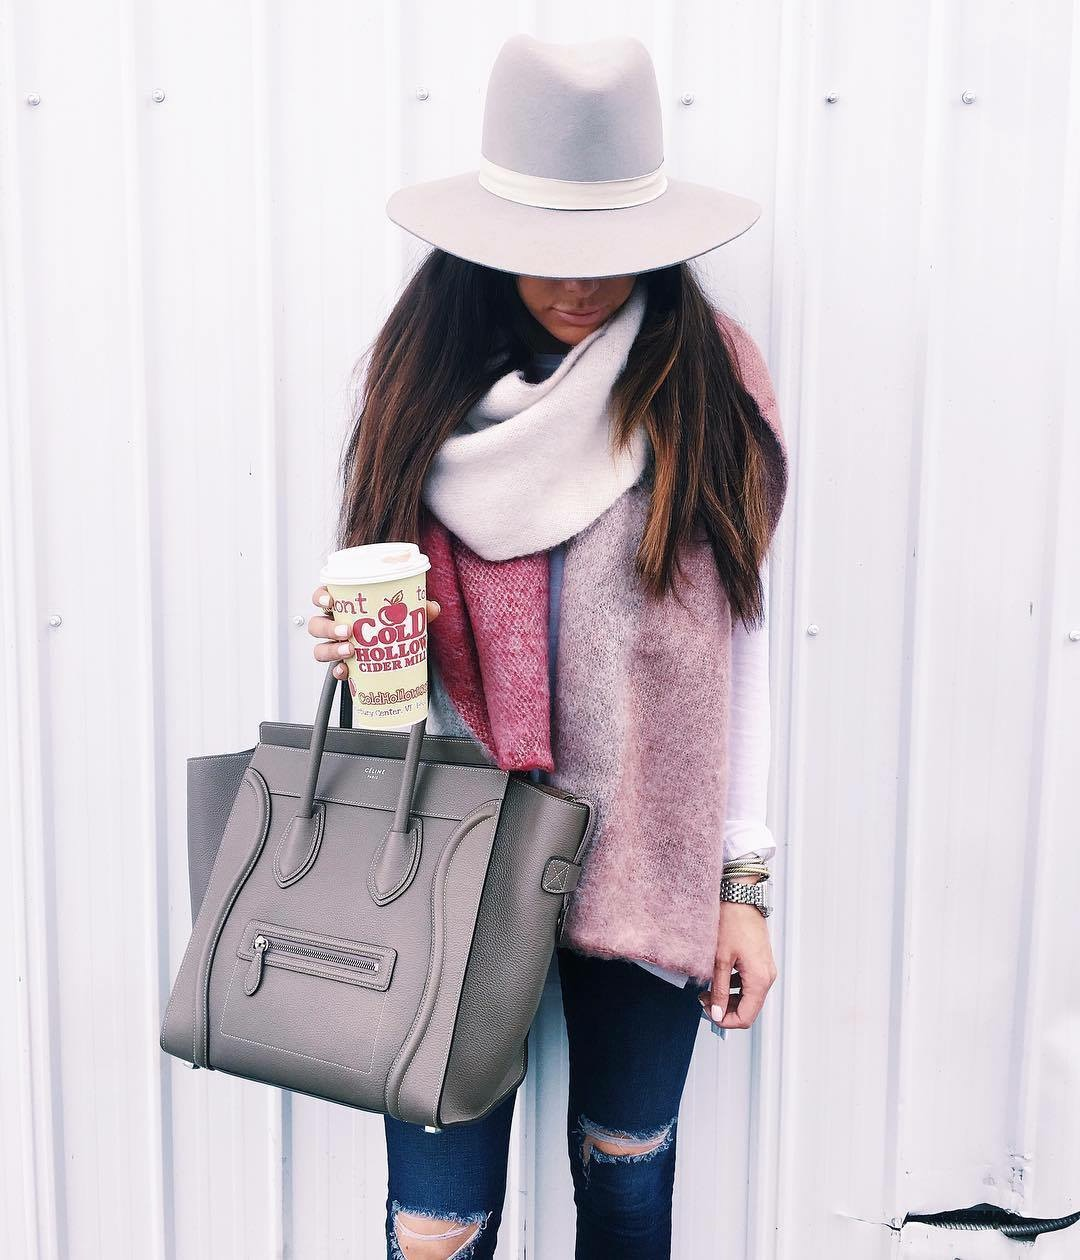 emily gemma, the sweetest thing blog, Taupe celine mini luggage, ASOS fluffy oversized scarf, AG ripped skinny jeans, janessa leone hennsington hat, fall outfit ideas, travel blog, Cold hollow cider mill, travel blogger, fashion blogger, fall outfits and locations